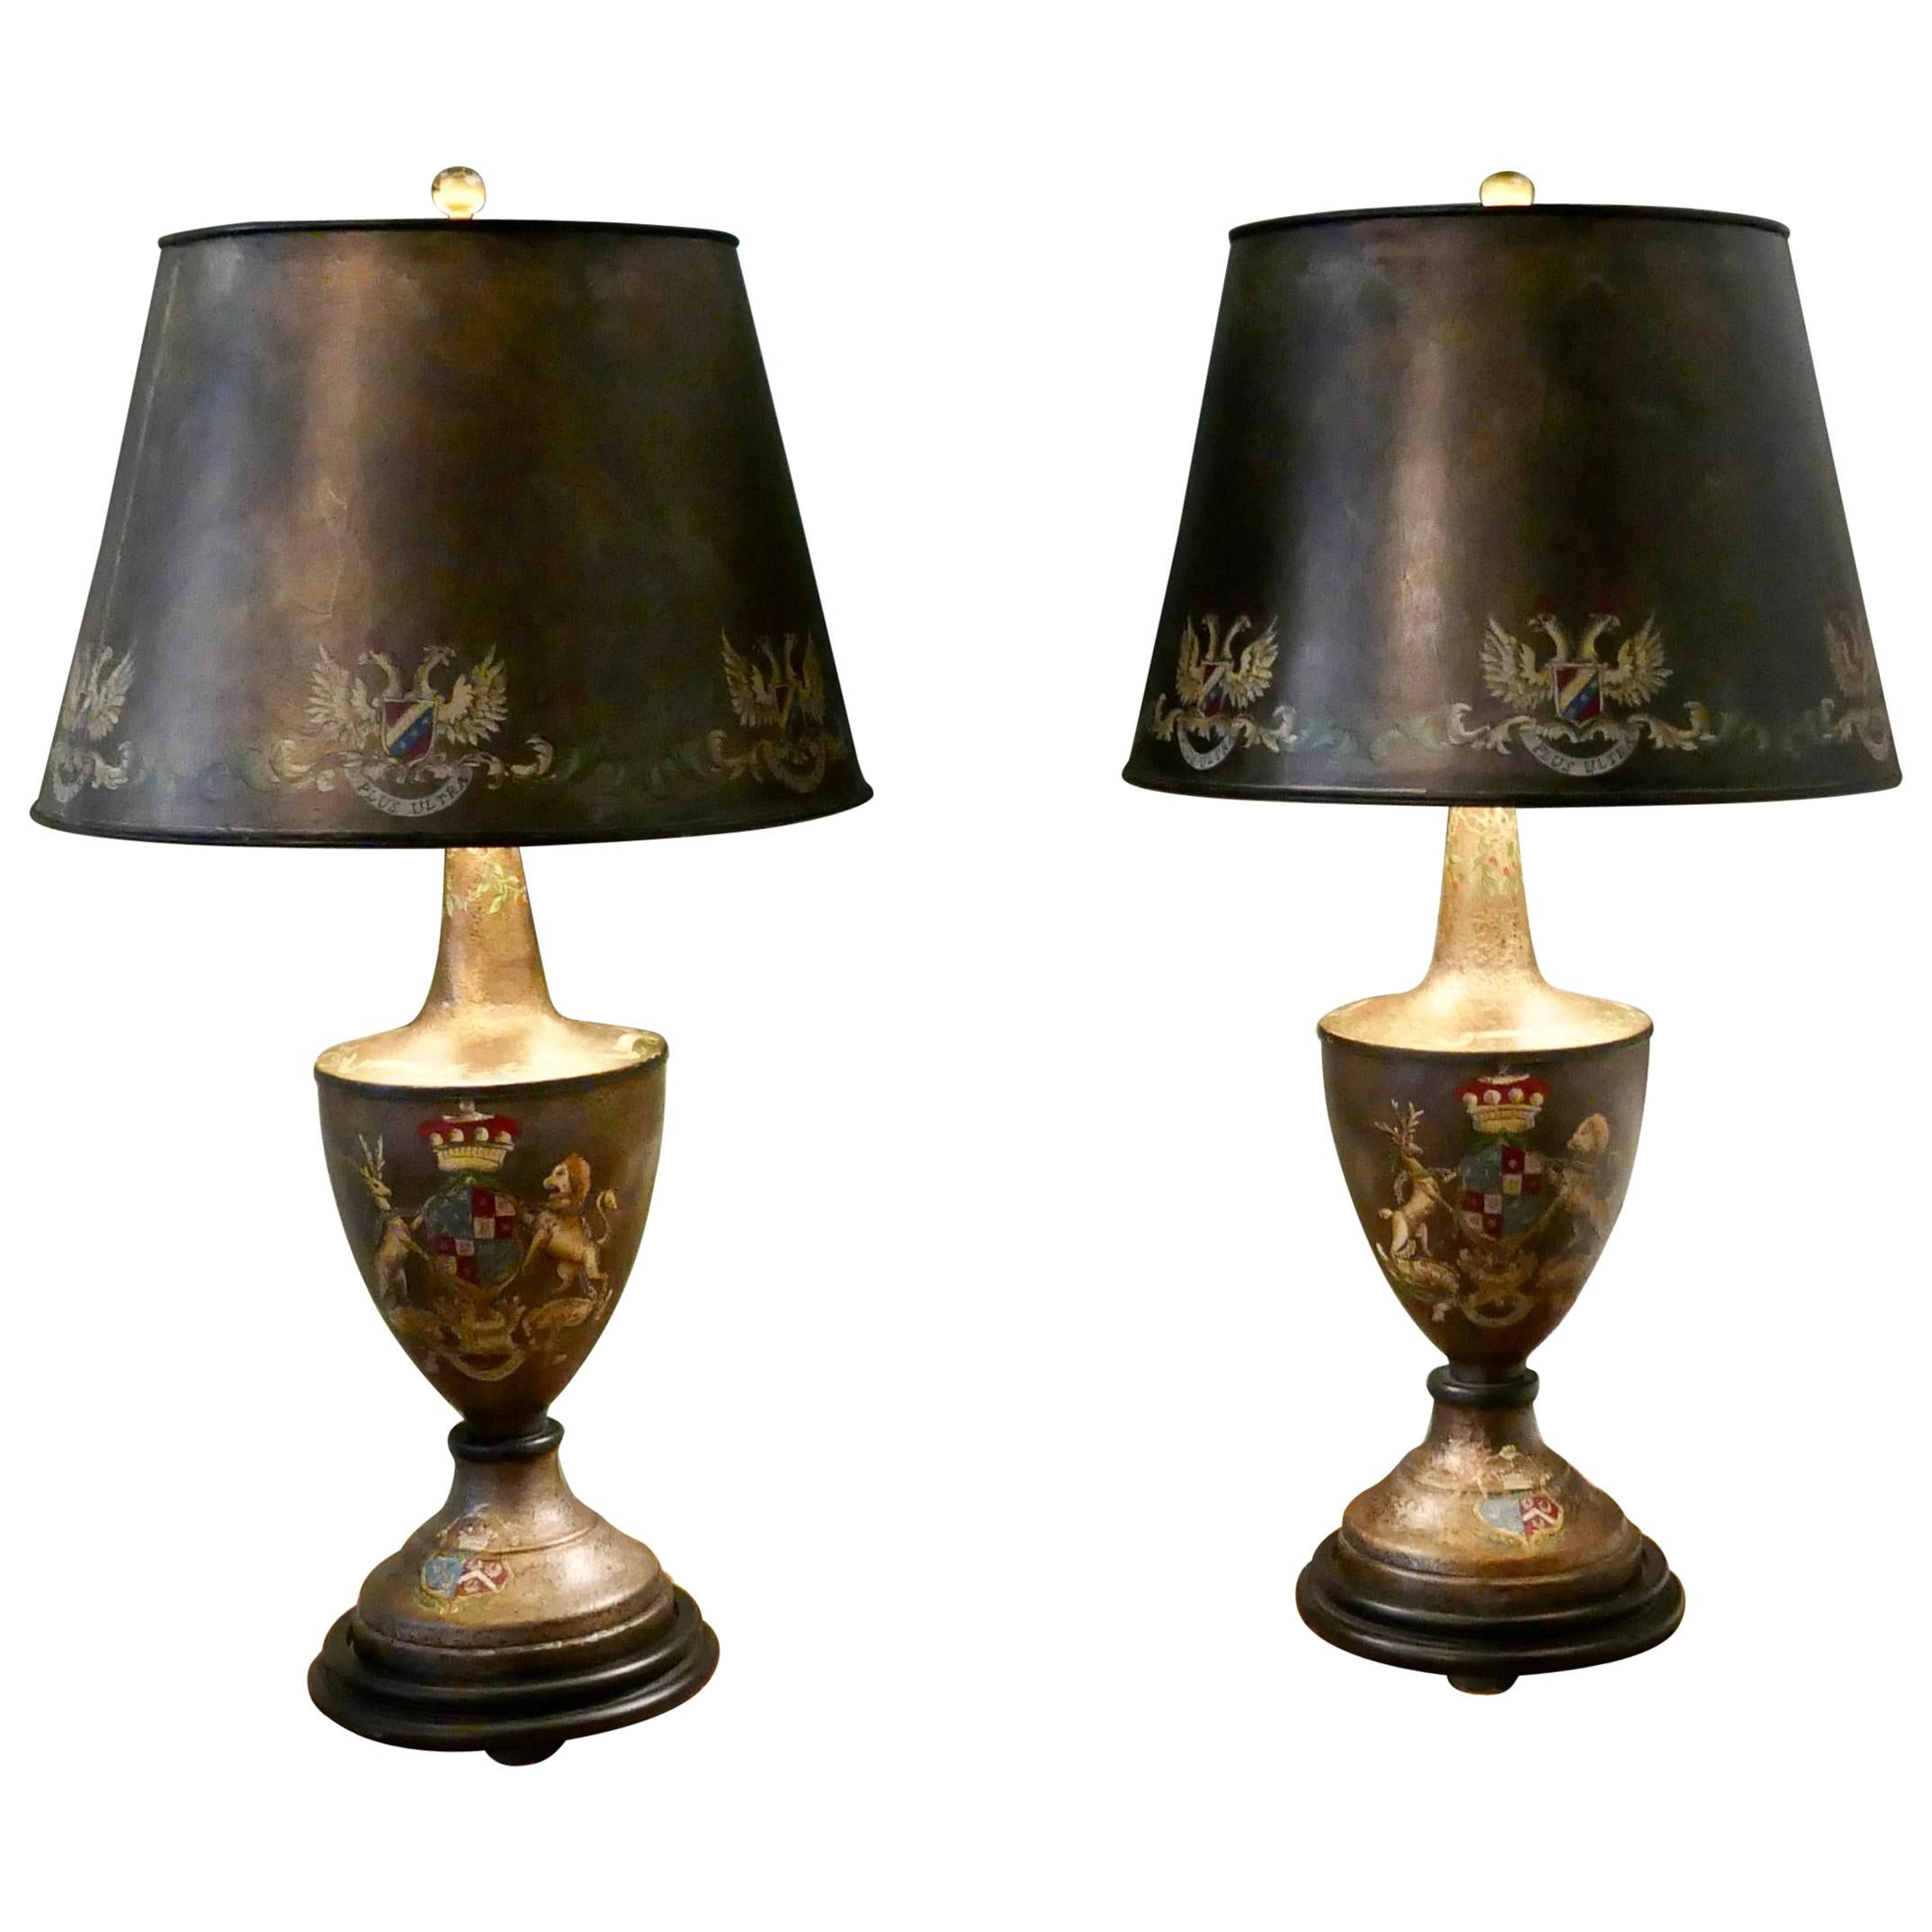 Pair of Large Bronze Colored Toleware Table Lamps